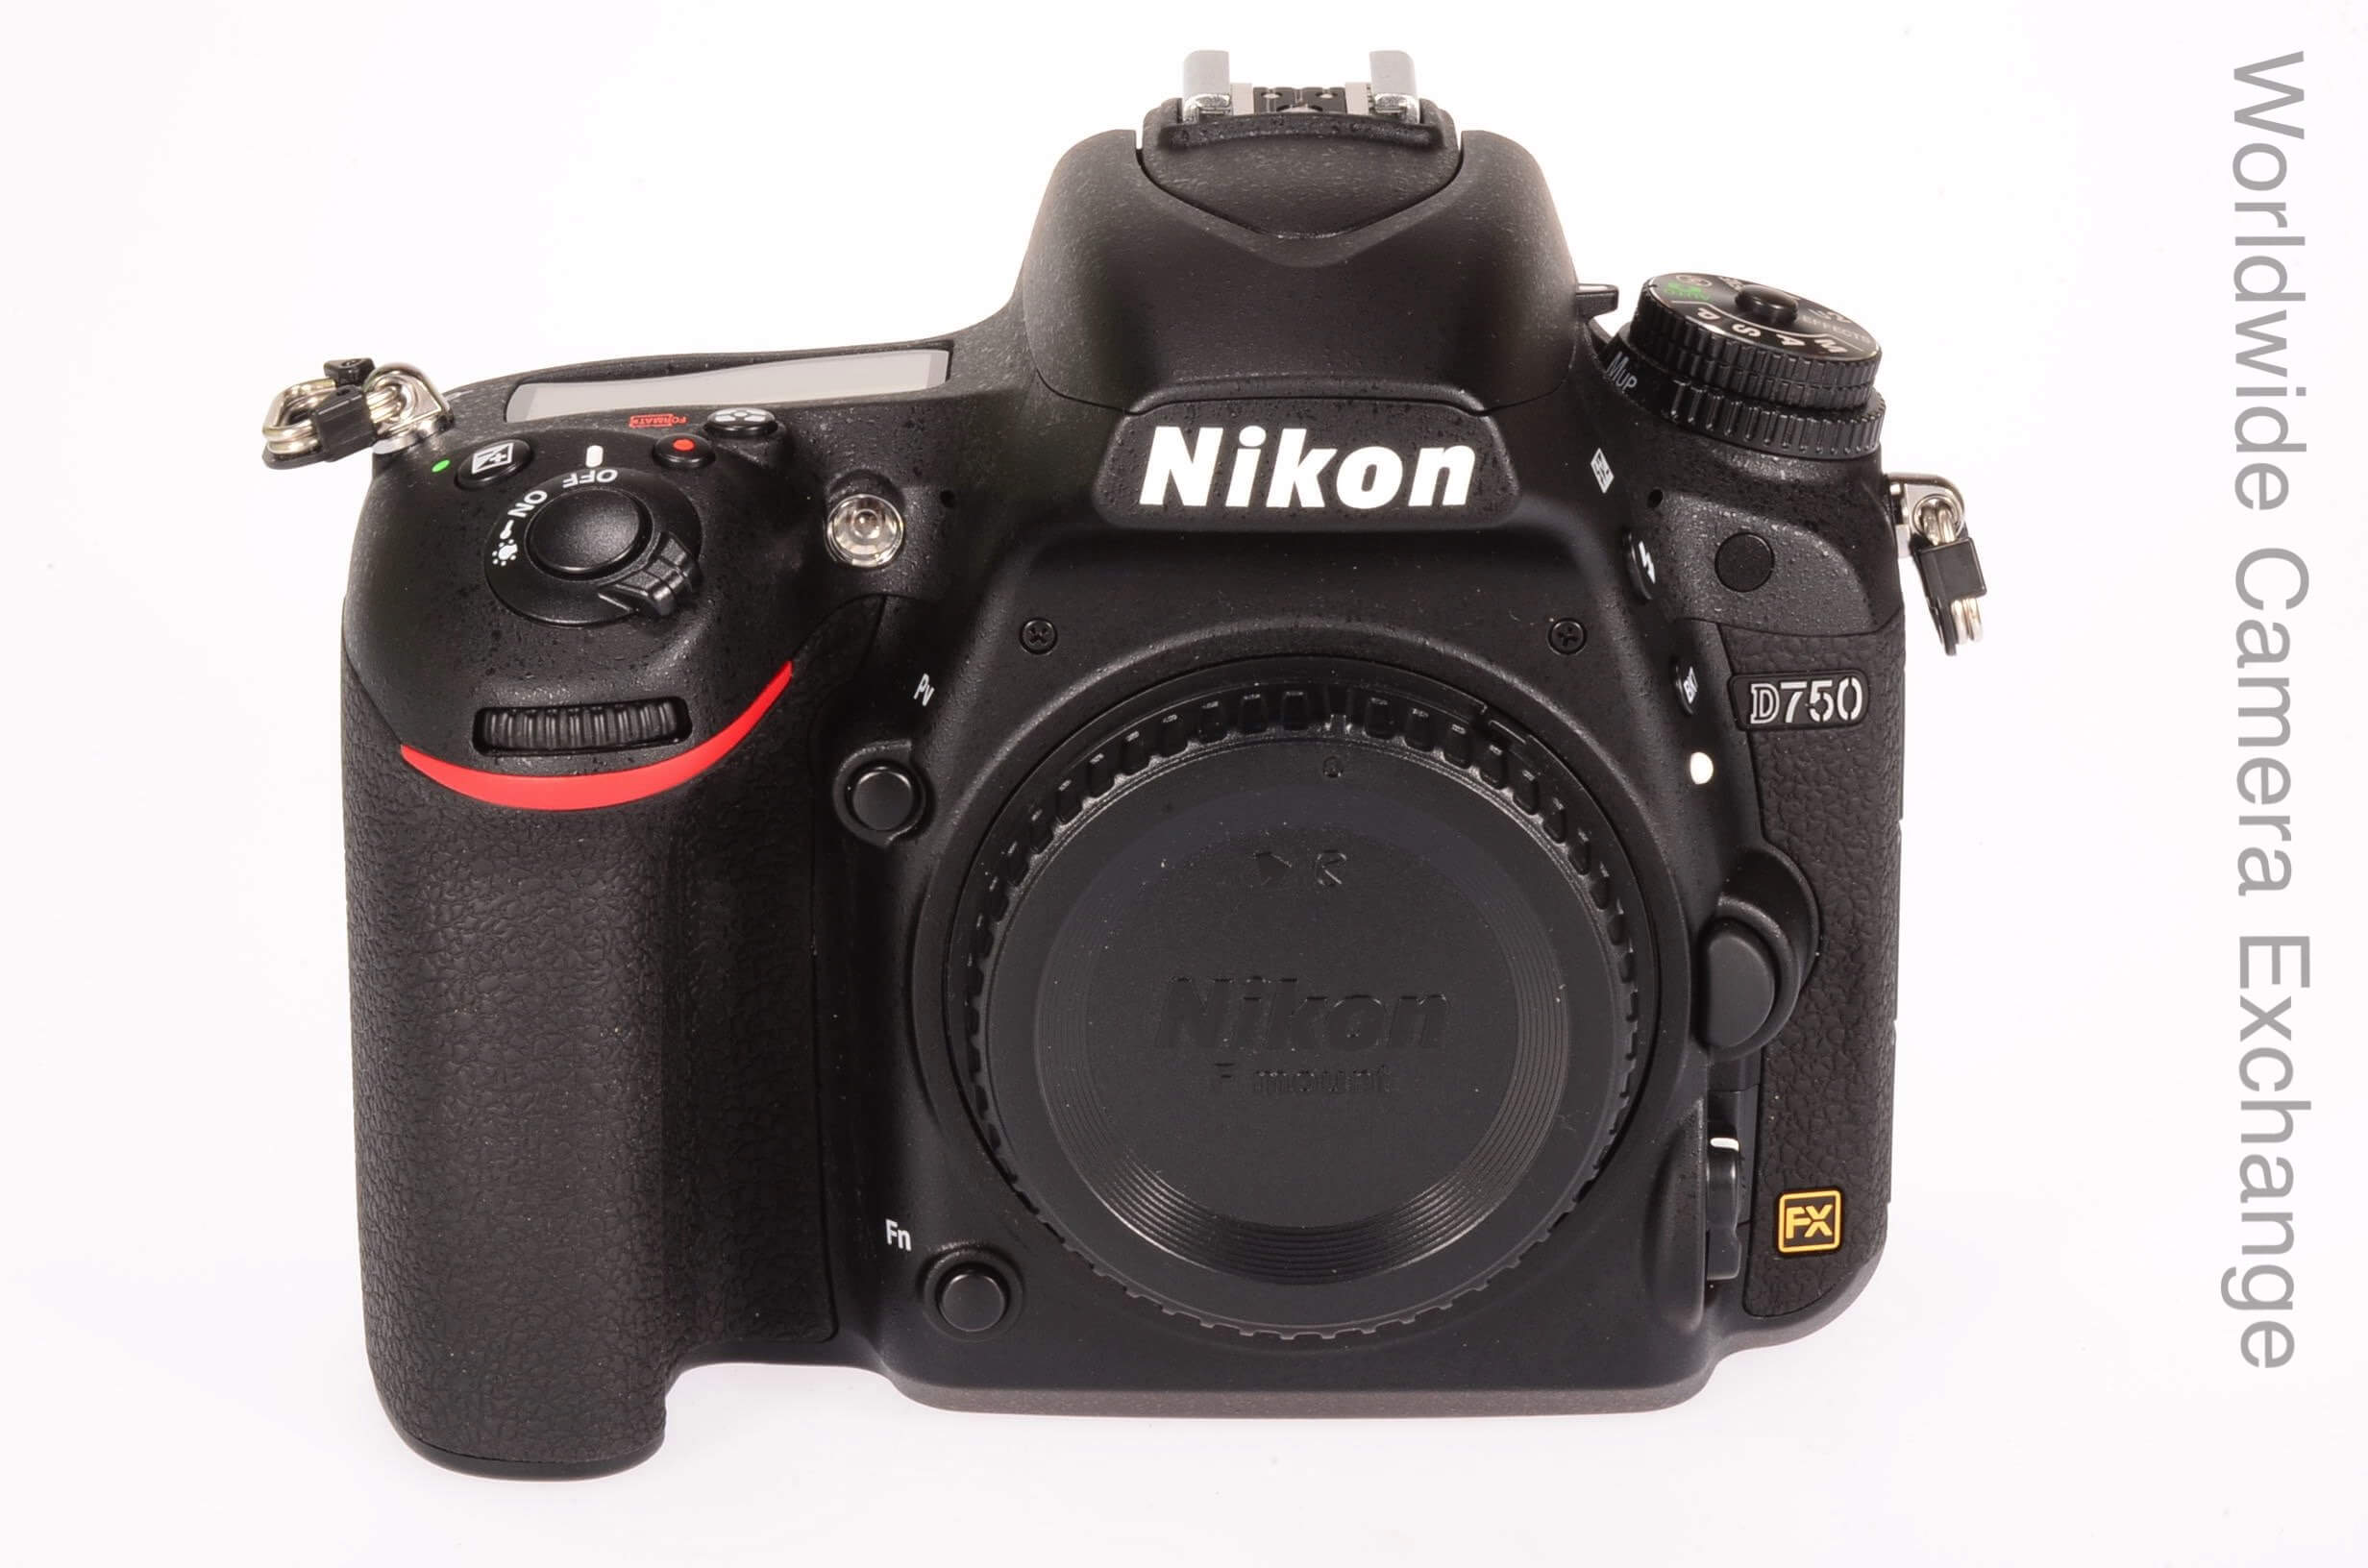 Nikon D750 body, UK supplied, no flare! 435 actuations!